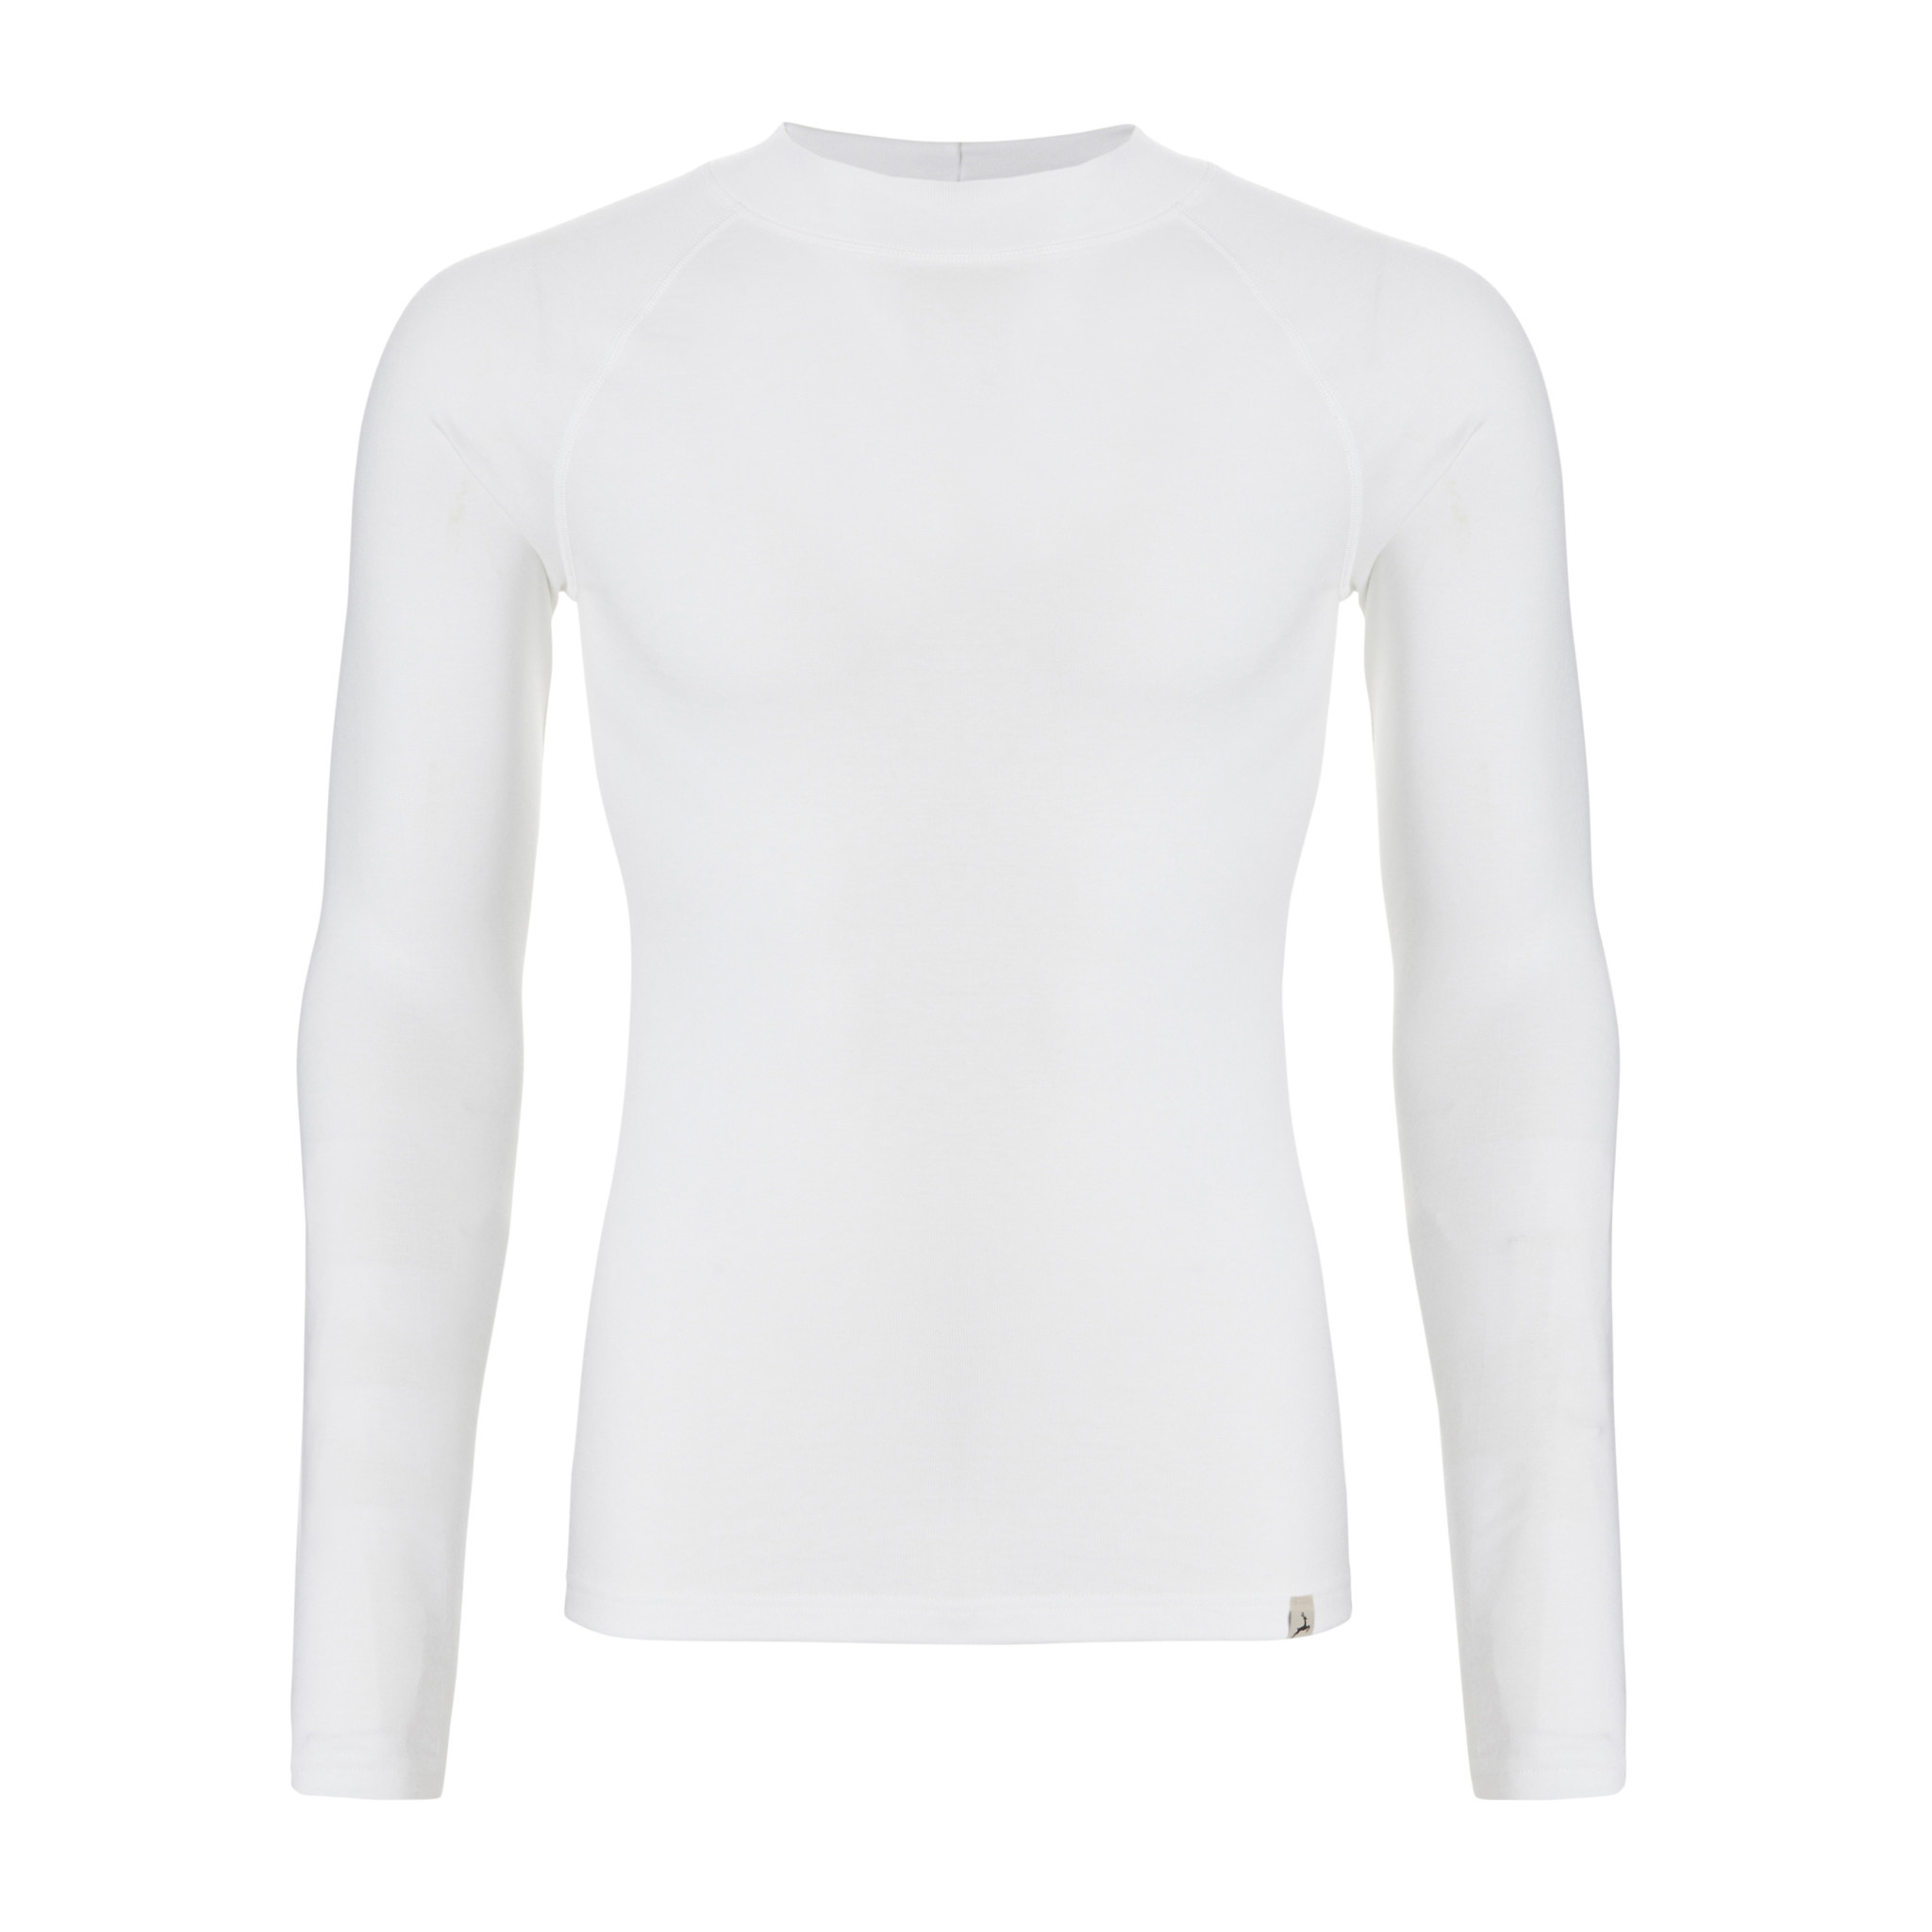 Thermo T-shirt lange mouw 30243 - wit-1